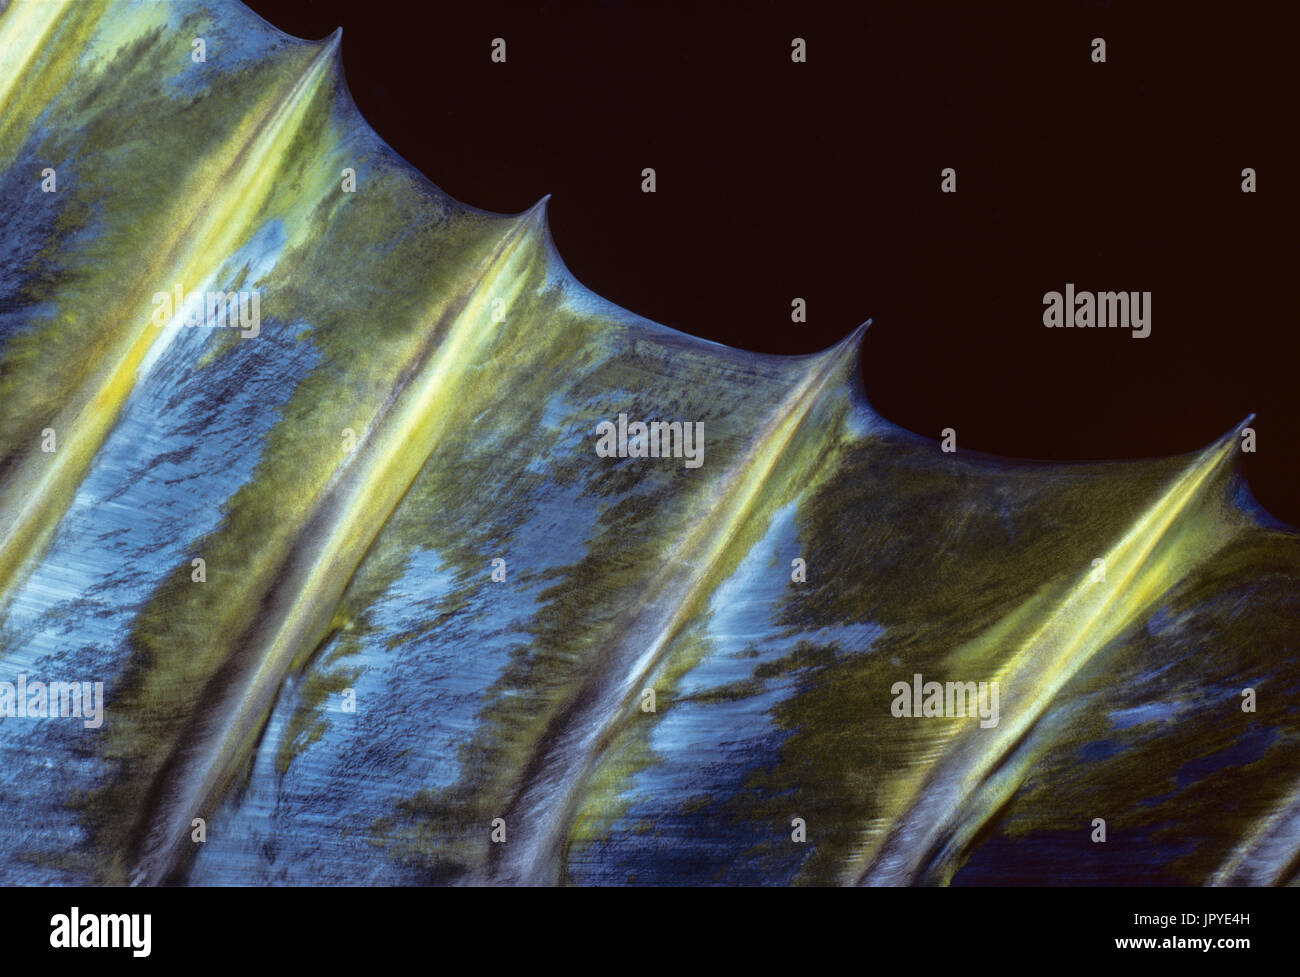 Dorsal fin and spines of Yellowfin Tuna - Mexico - Stock Image